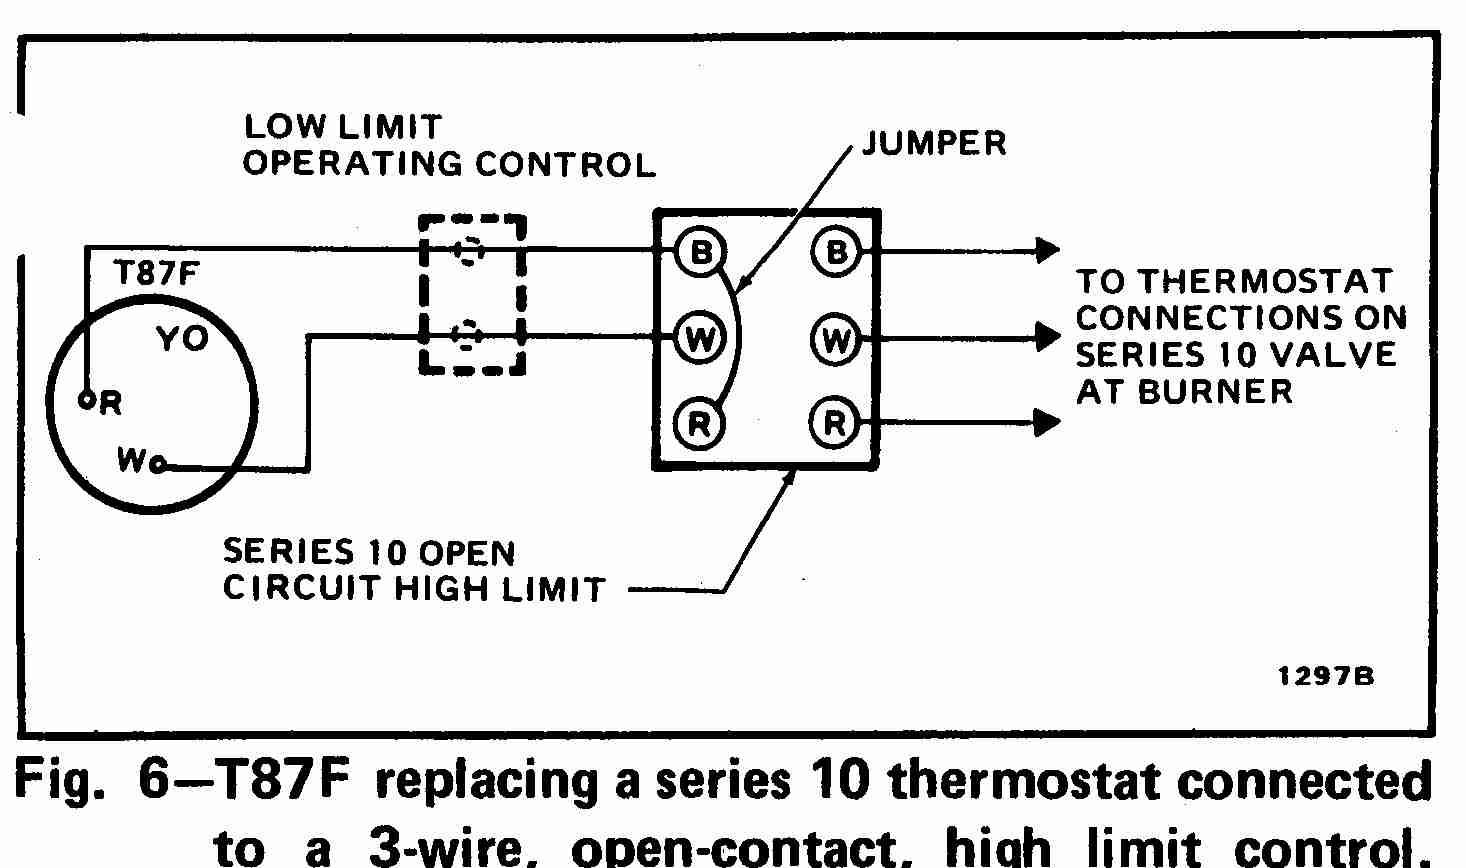 TT_T87F_0002_3WHL_DJF room thermostat wiring diagrams for hvac systems honeywell 7800 wiring diagram at reclaimingppi.co